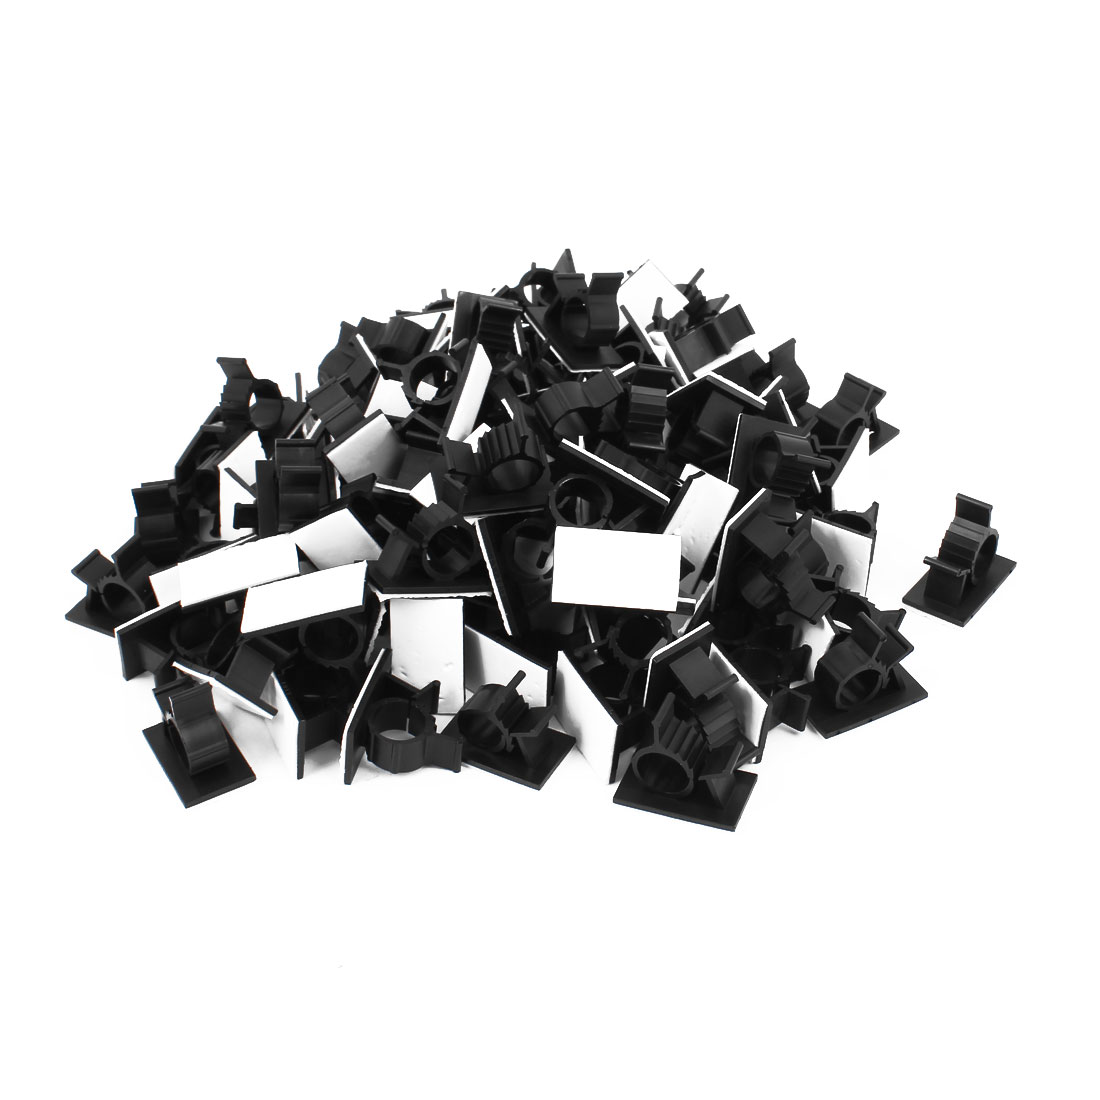 100Pcs Self Adhesive Adjustable Wire Cable Ties Clamps Sticker Clips Black 12.5mm